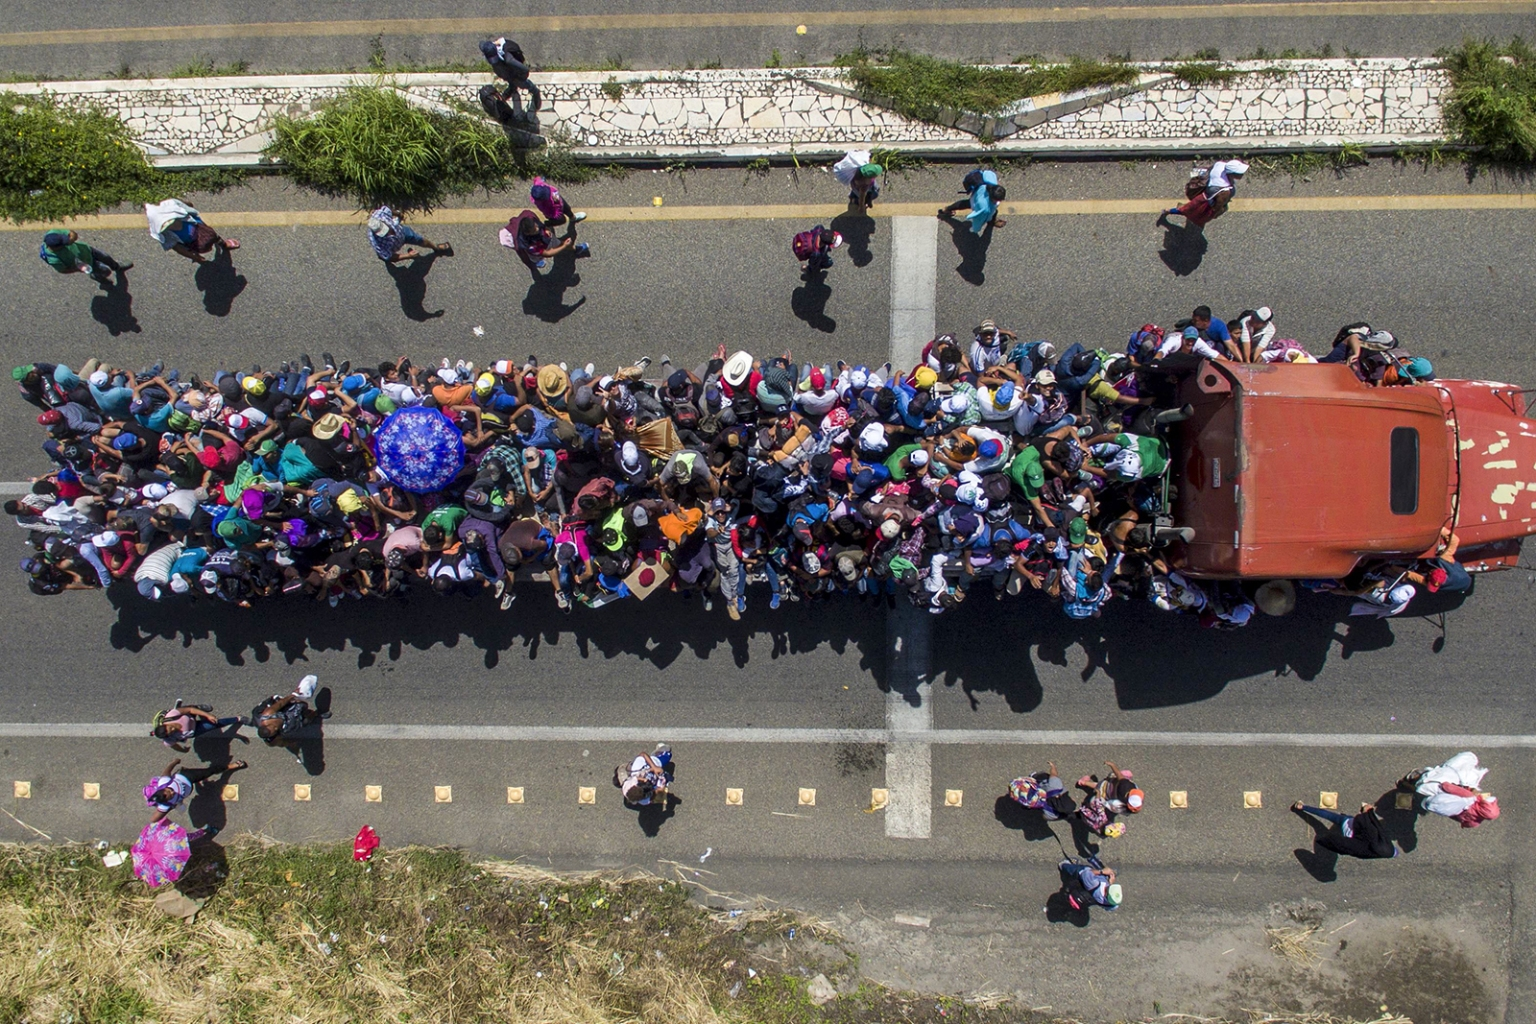 Honduran migrants crowd a truck as they head through Huixtla, in Chiapas state, Mexico, en route to the United States on Oct. 22. PEDRO PARDO/AFP/Getty Images